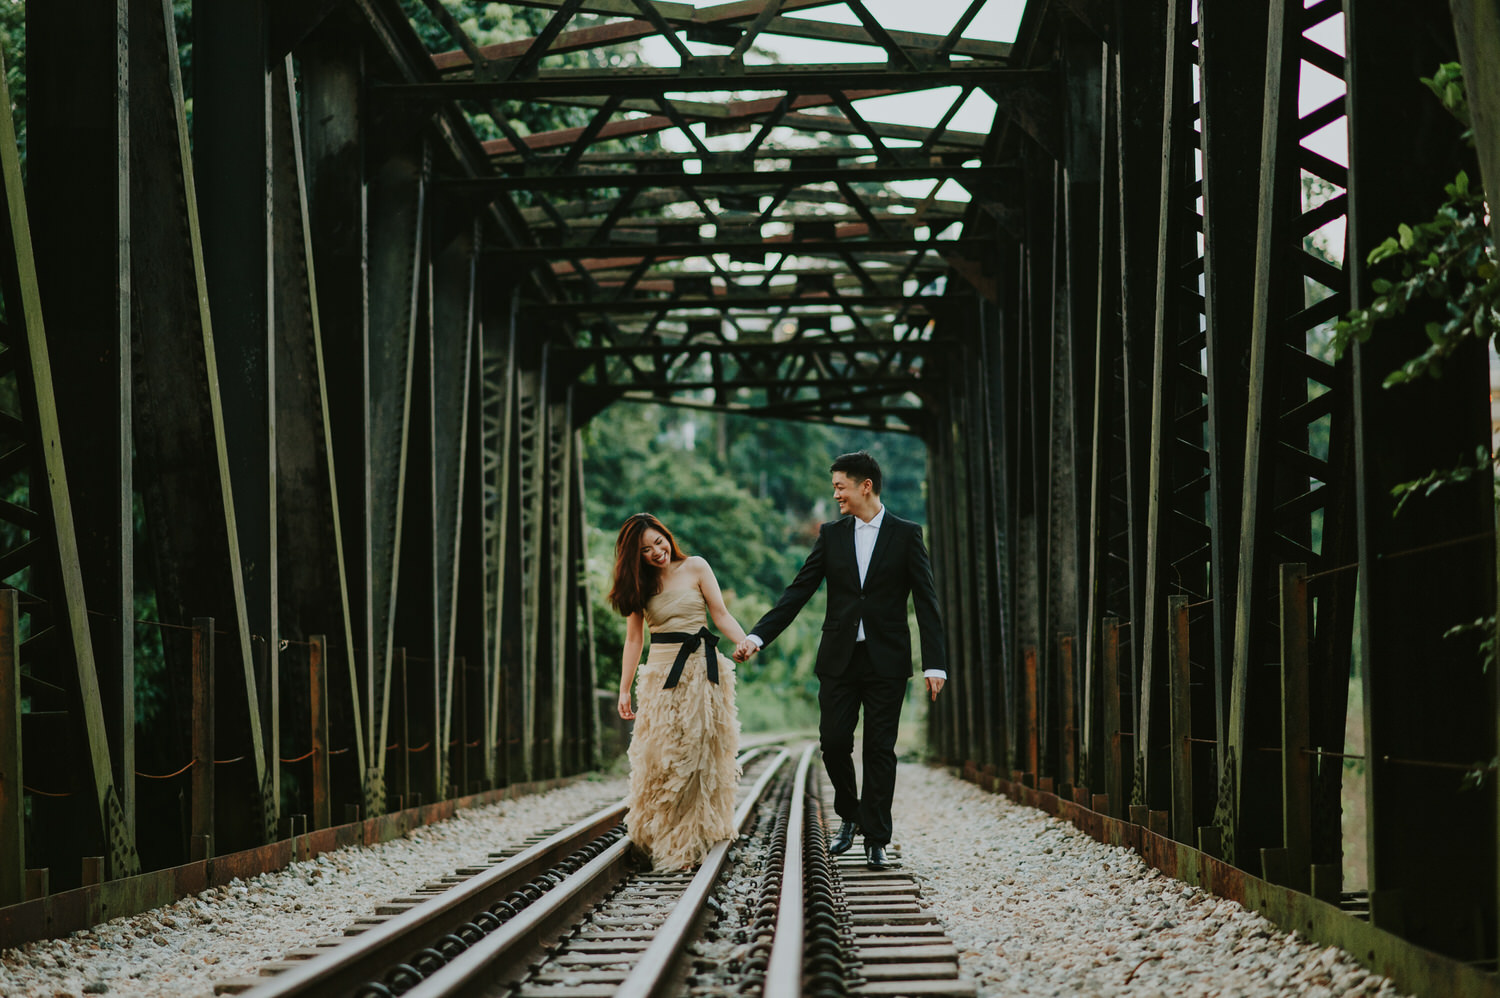 singapore prewedding destination - singapore wedding - diktatphotography - kadek artayasa - nikole + ardika - 43